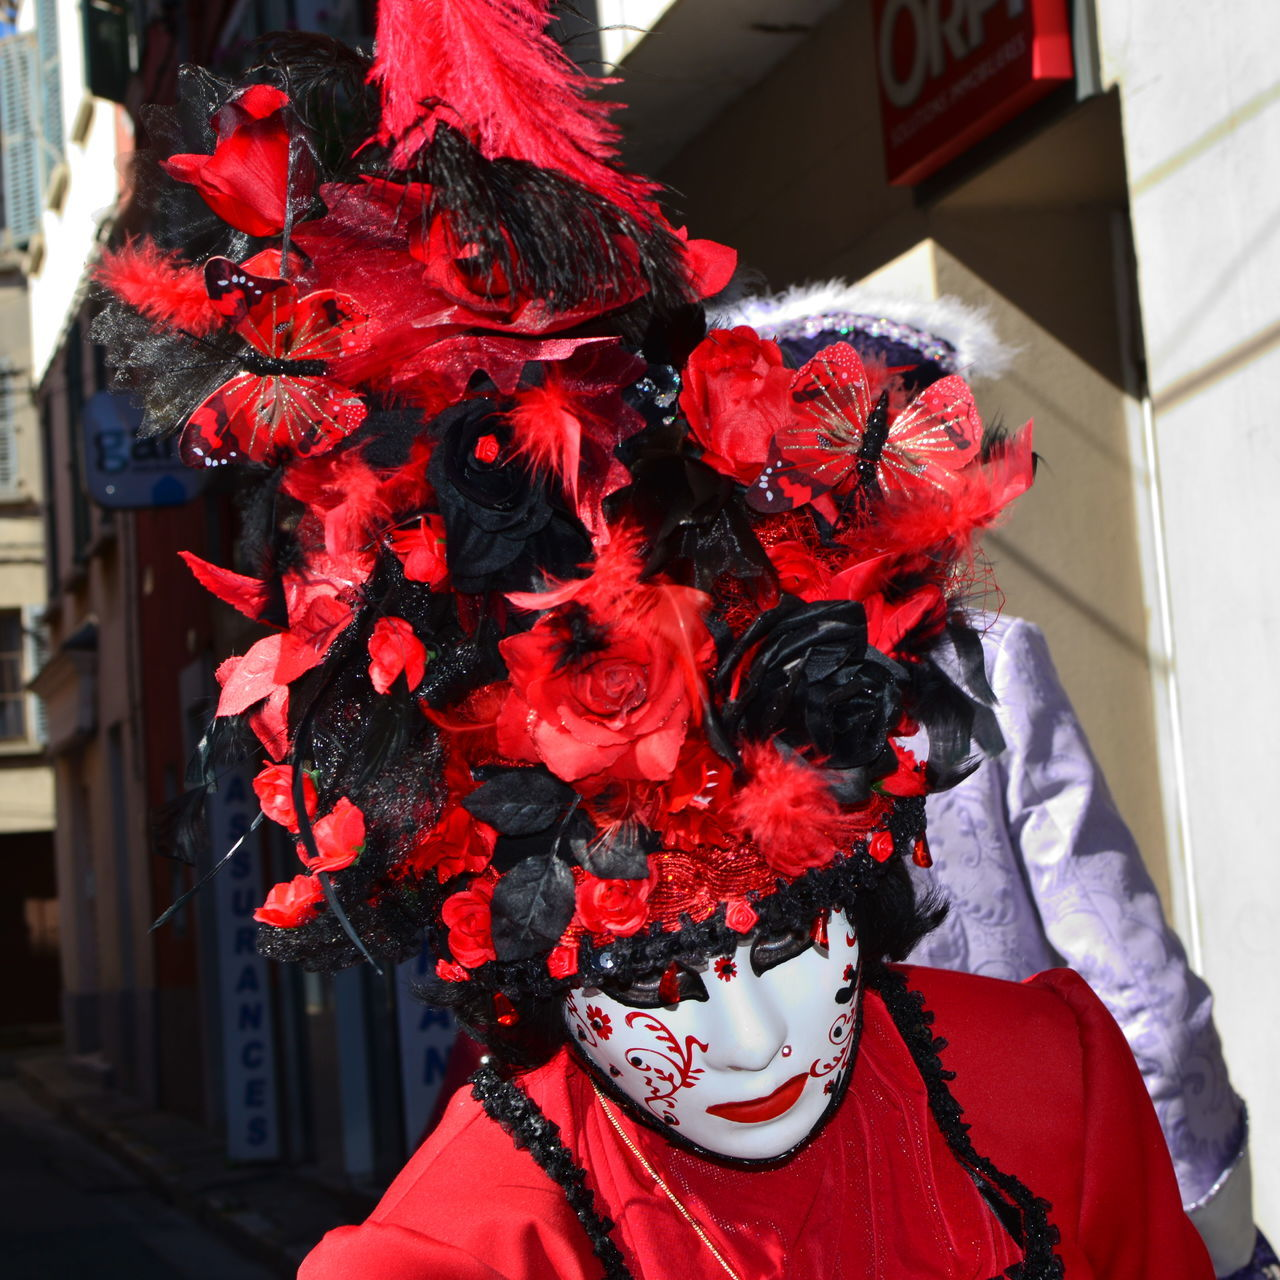 red, costume, real people, celebration, mask - disguise, carnival, leisure activity, venetian mask, one person, wearing, outdoors, men, day, flower